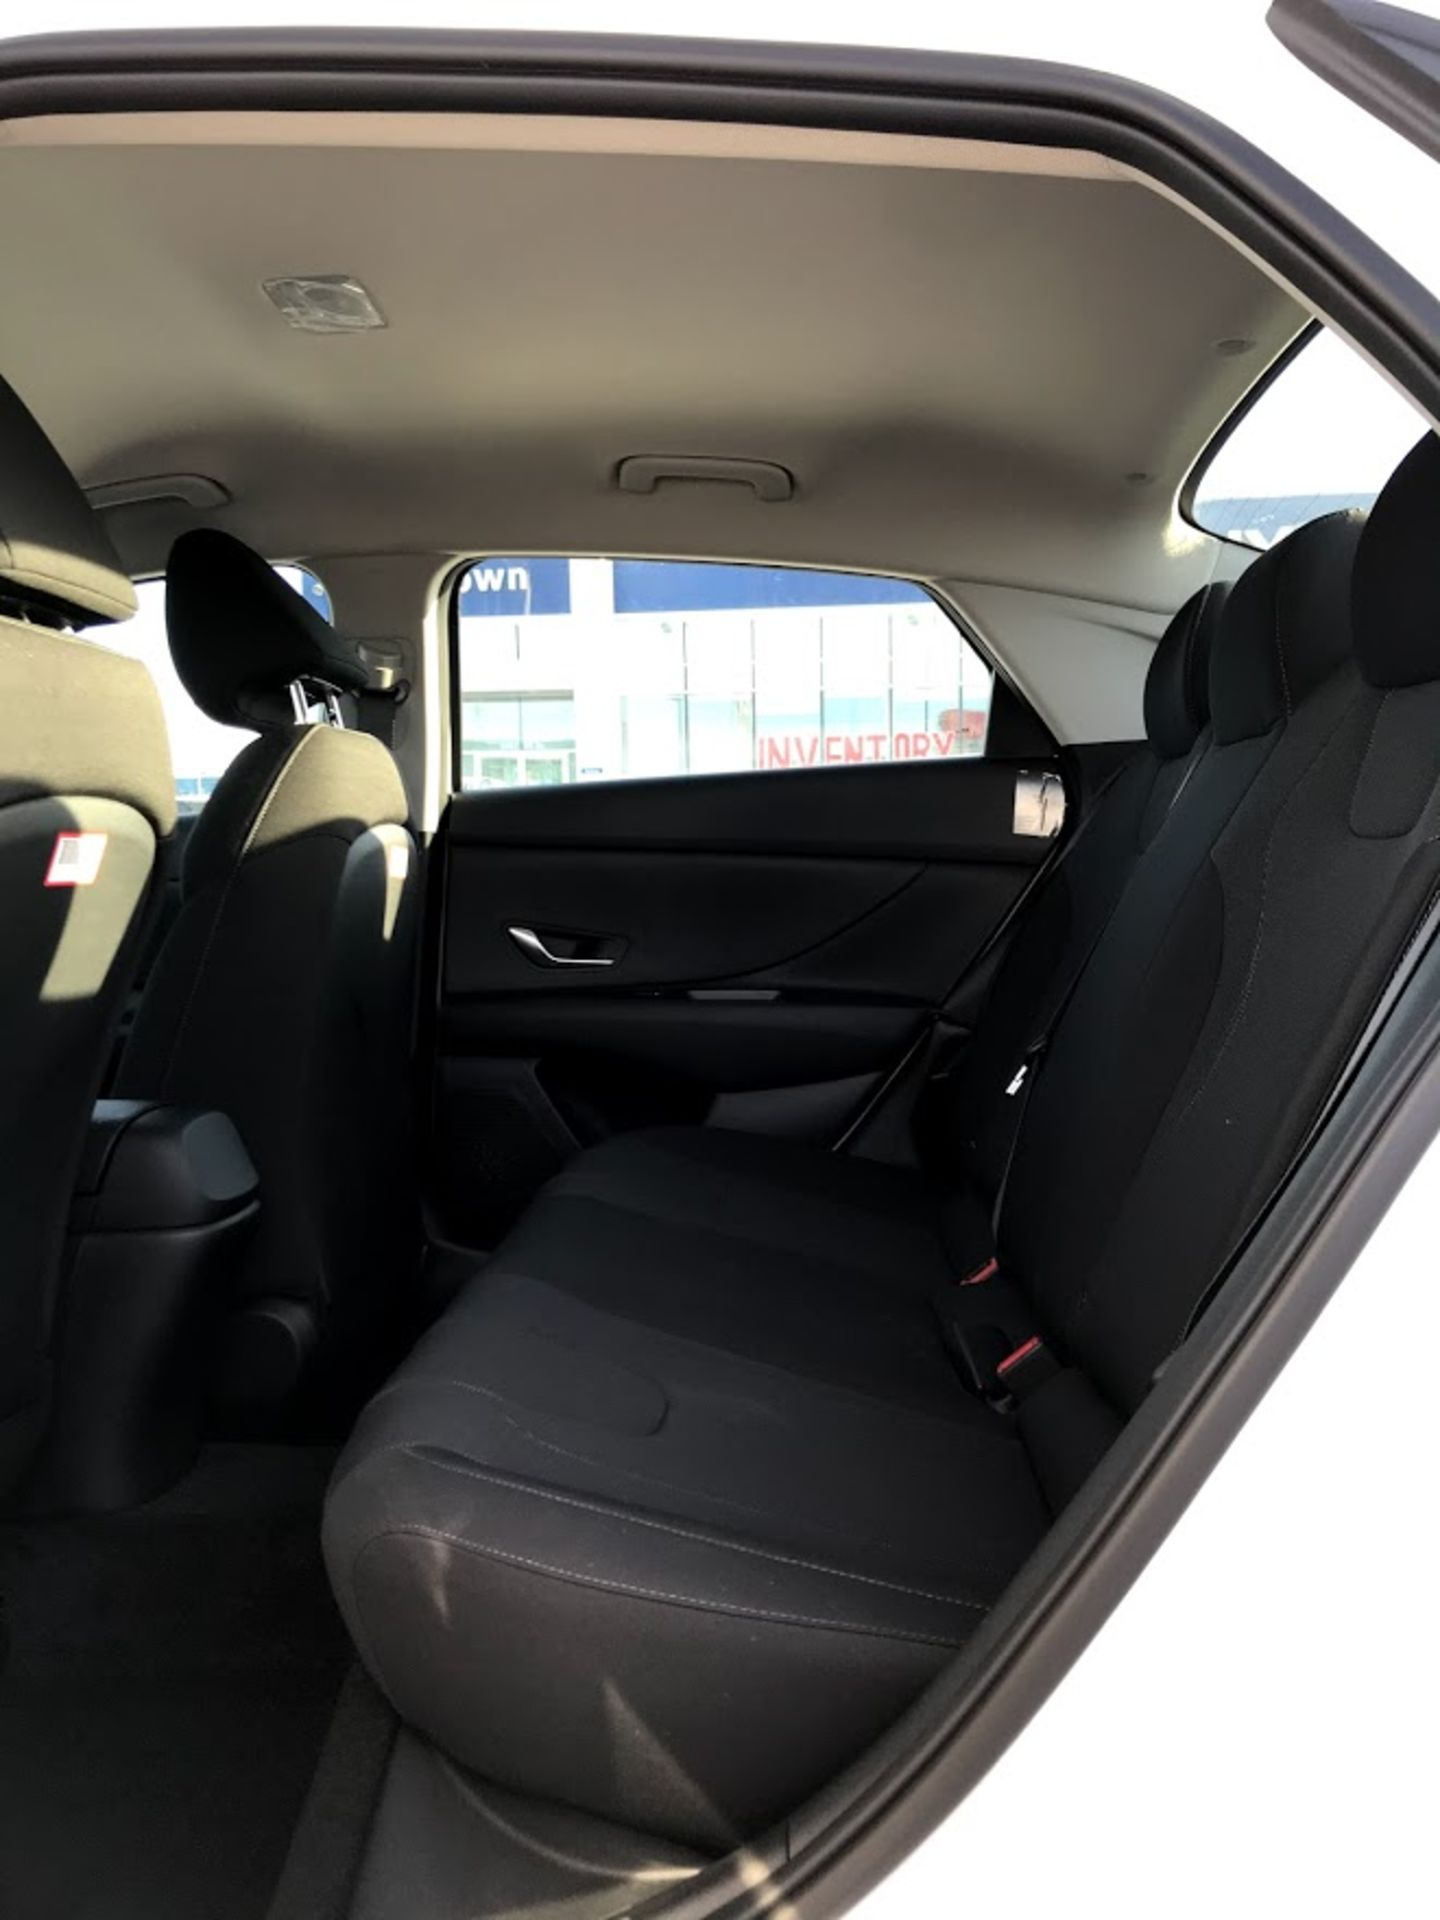 2021 Hyundai Elantra Essential for sale in Edmonton, Alberta